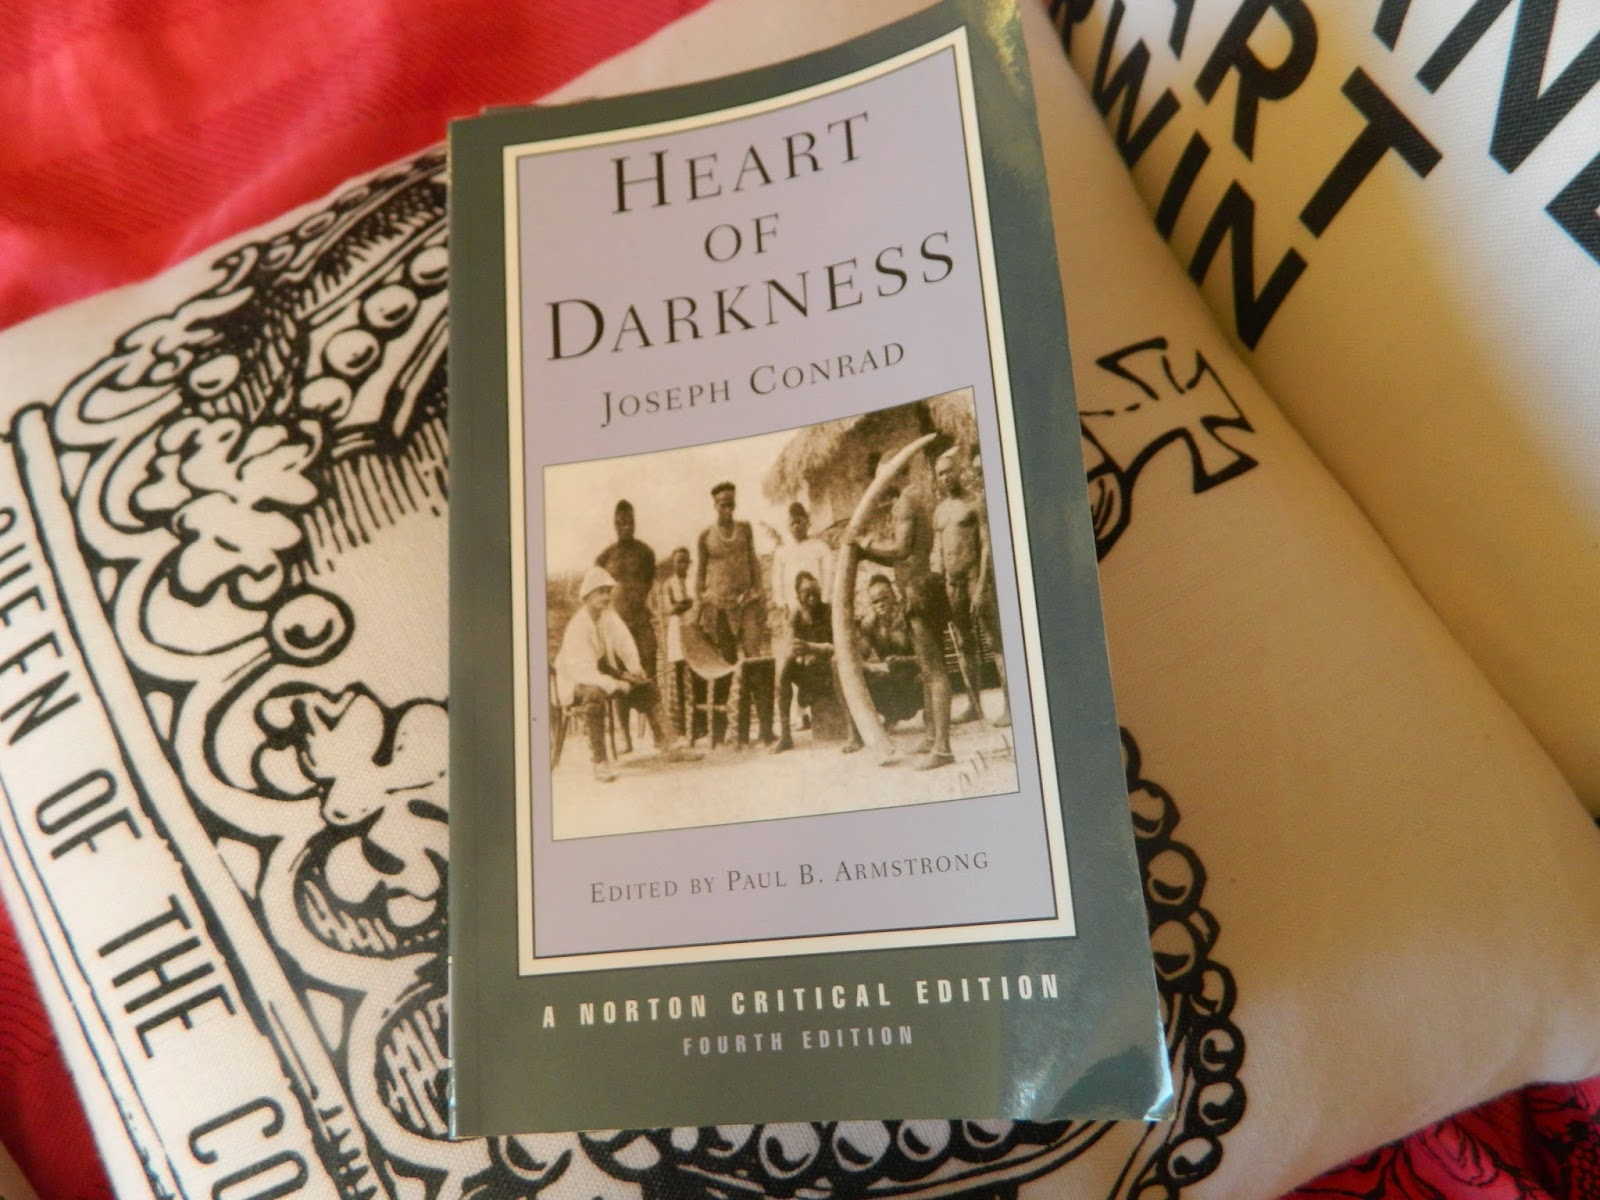 """joseph conrad heart of darkness the real world essay Heart of darkness by joseph conrad an exploration of racism in heart of darkness heart of darkness projects the image of africa as """"the other world."""